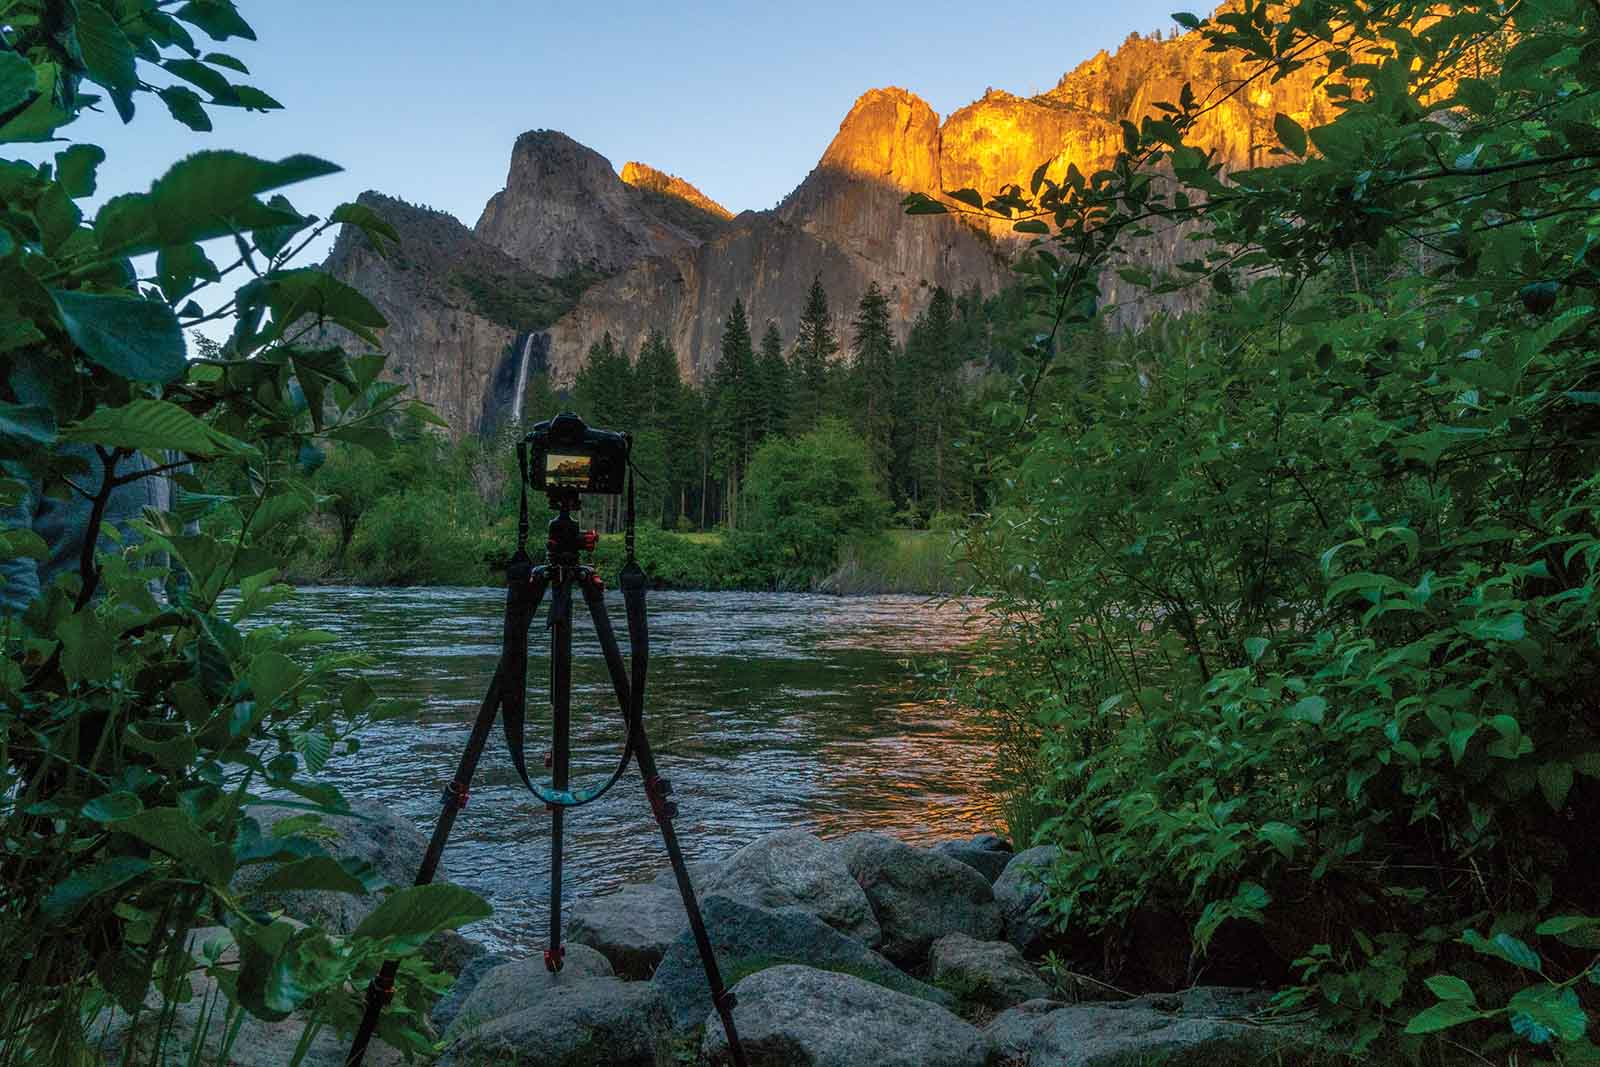 The ProMaster SP 425CK Professional Tripod in action